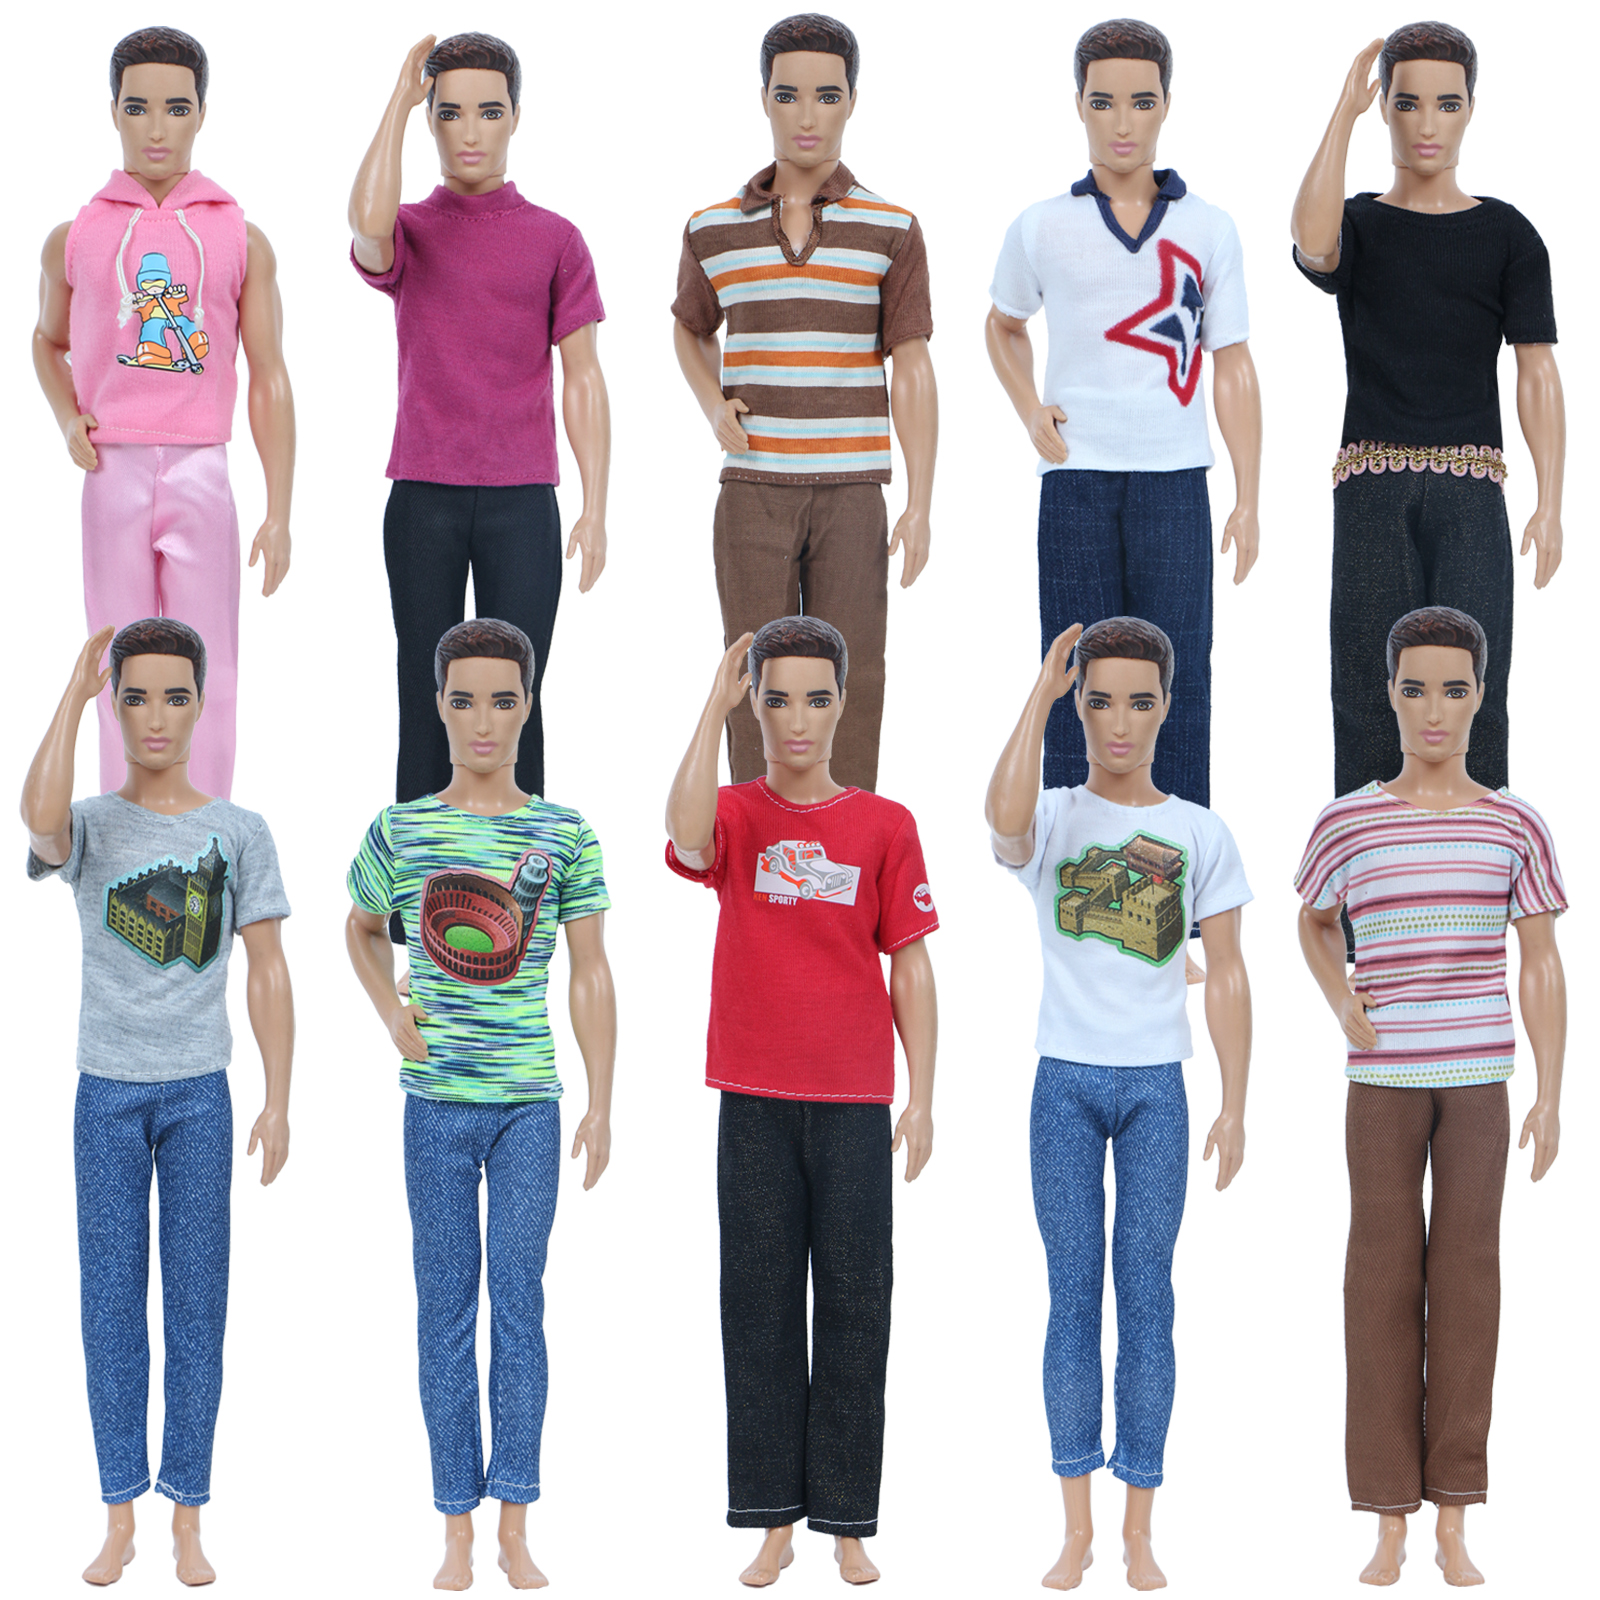 Lot 5Sets Casual Clothes Outfits Shirt Pant For 18/'/' Boy Doll 2 pair of Shoes